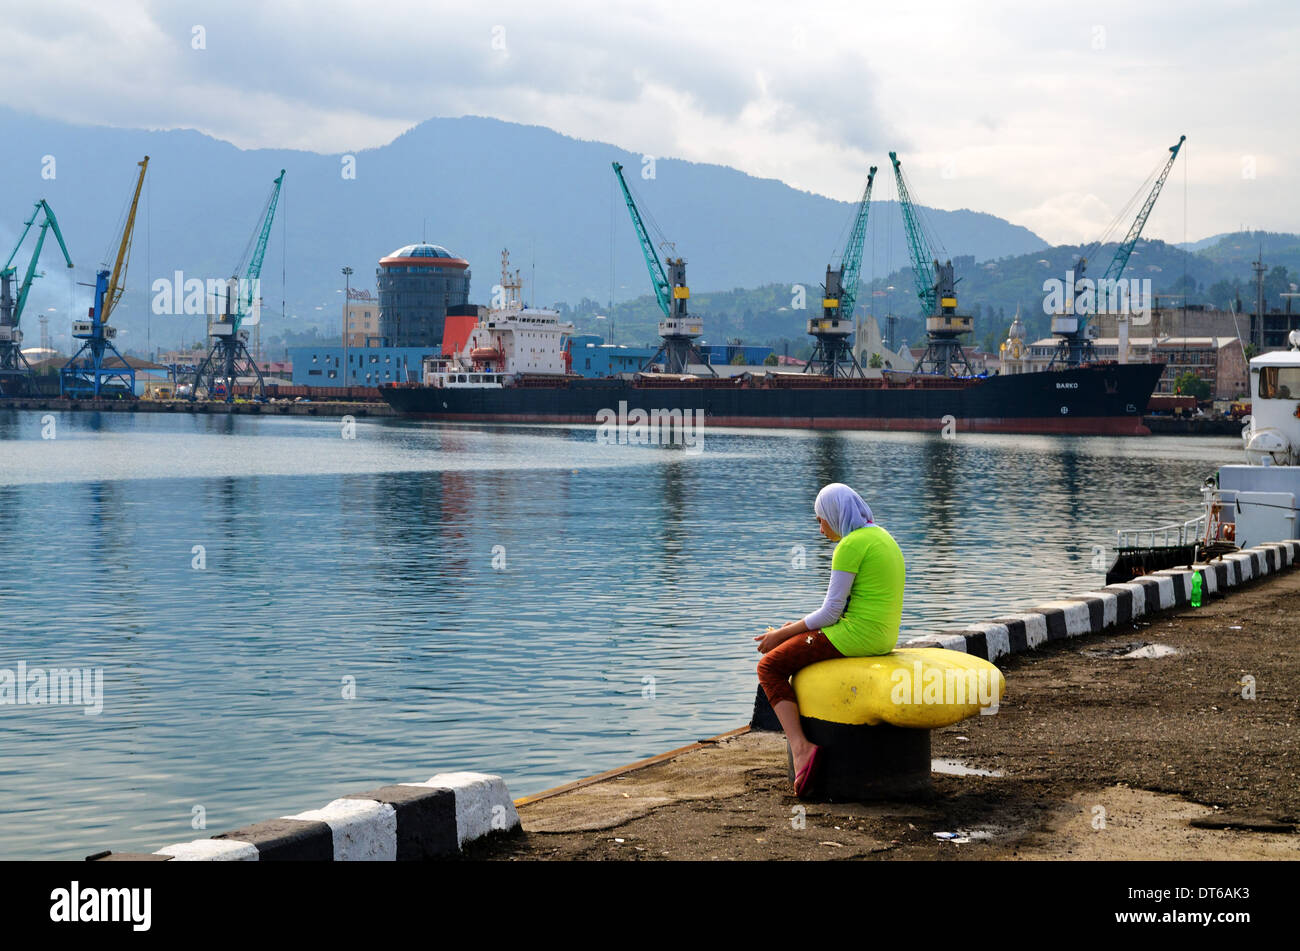 Muslim girl feeds birds on moorage, Batumi, Republic of Georgia - Stock Image